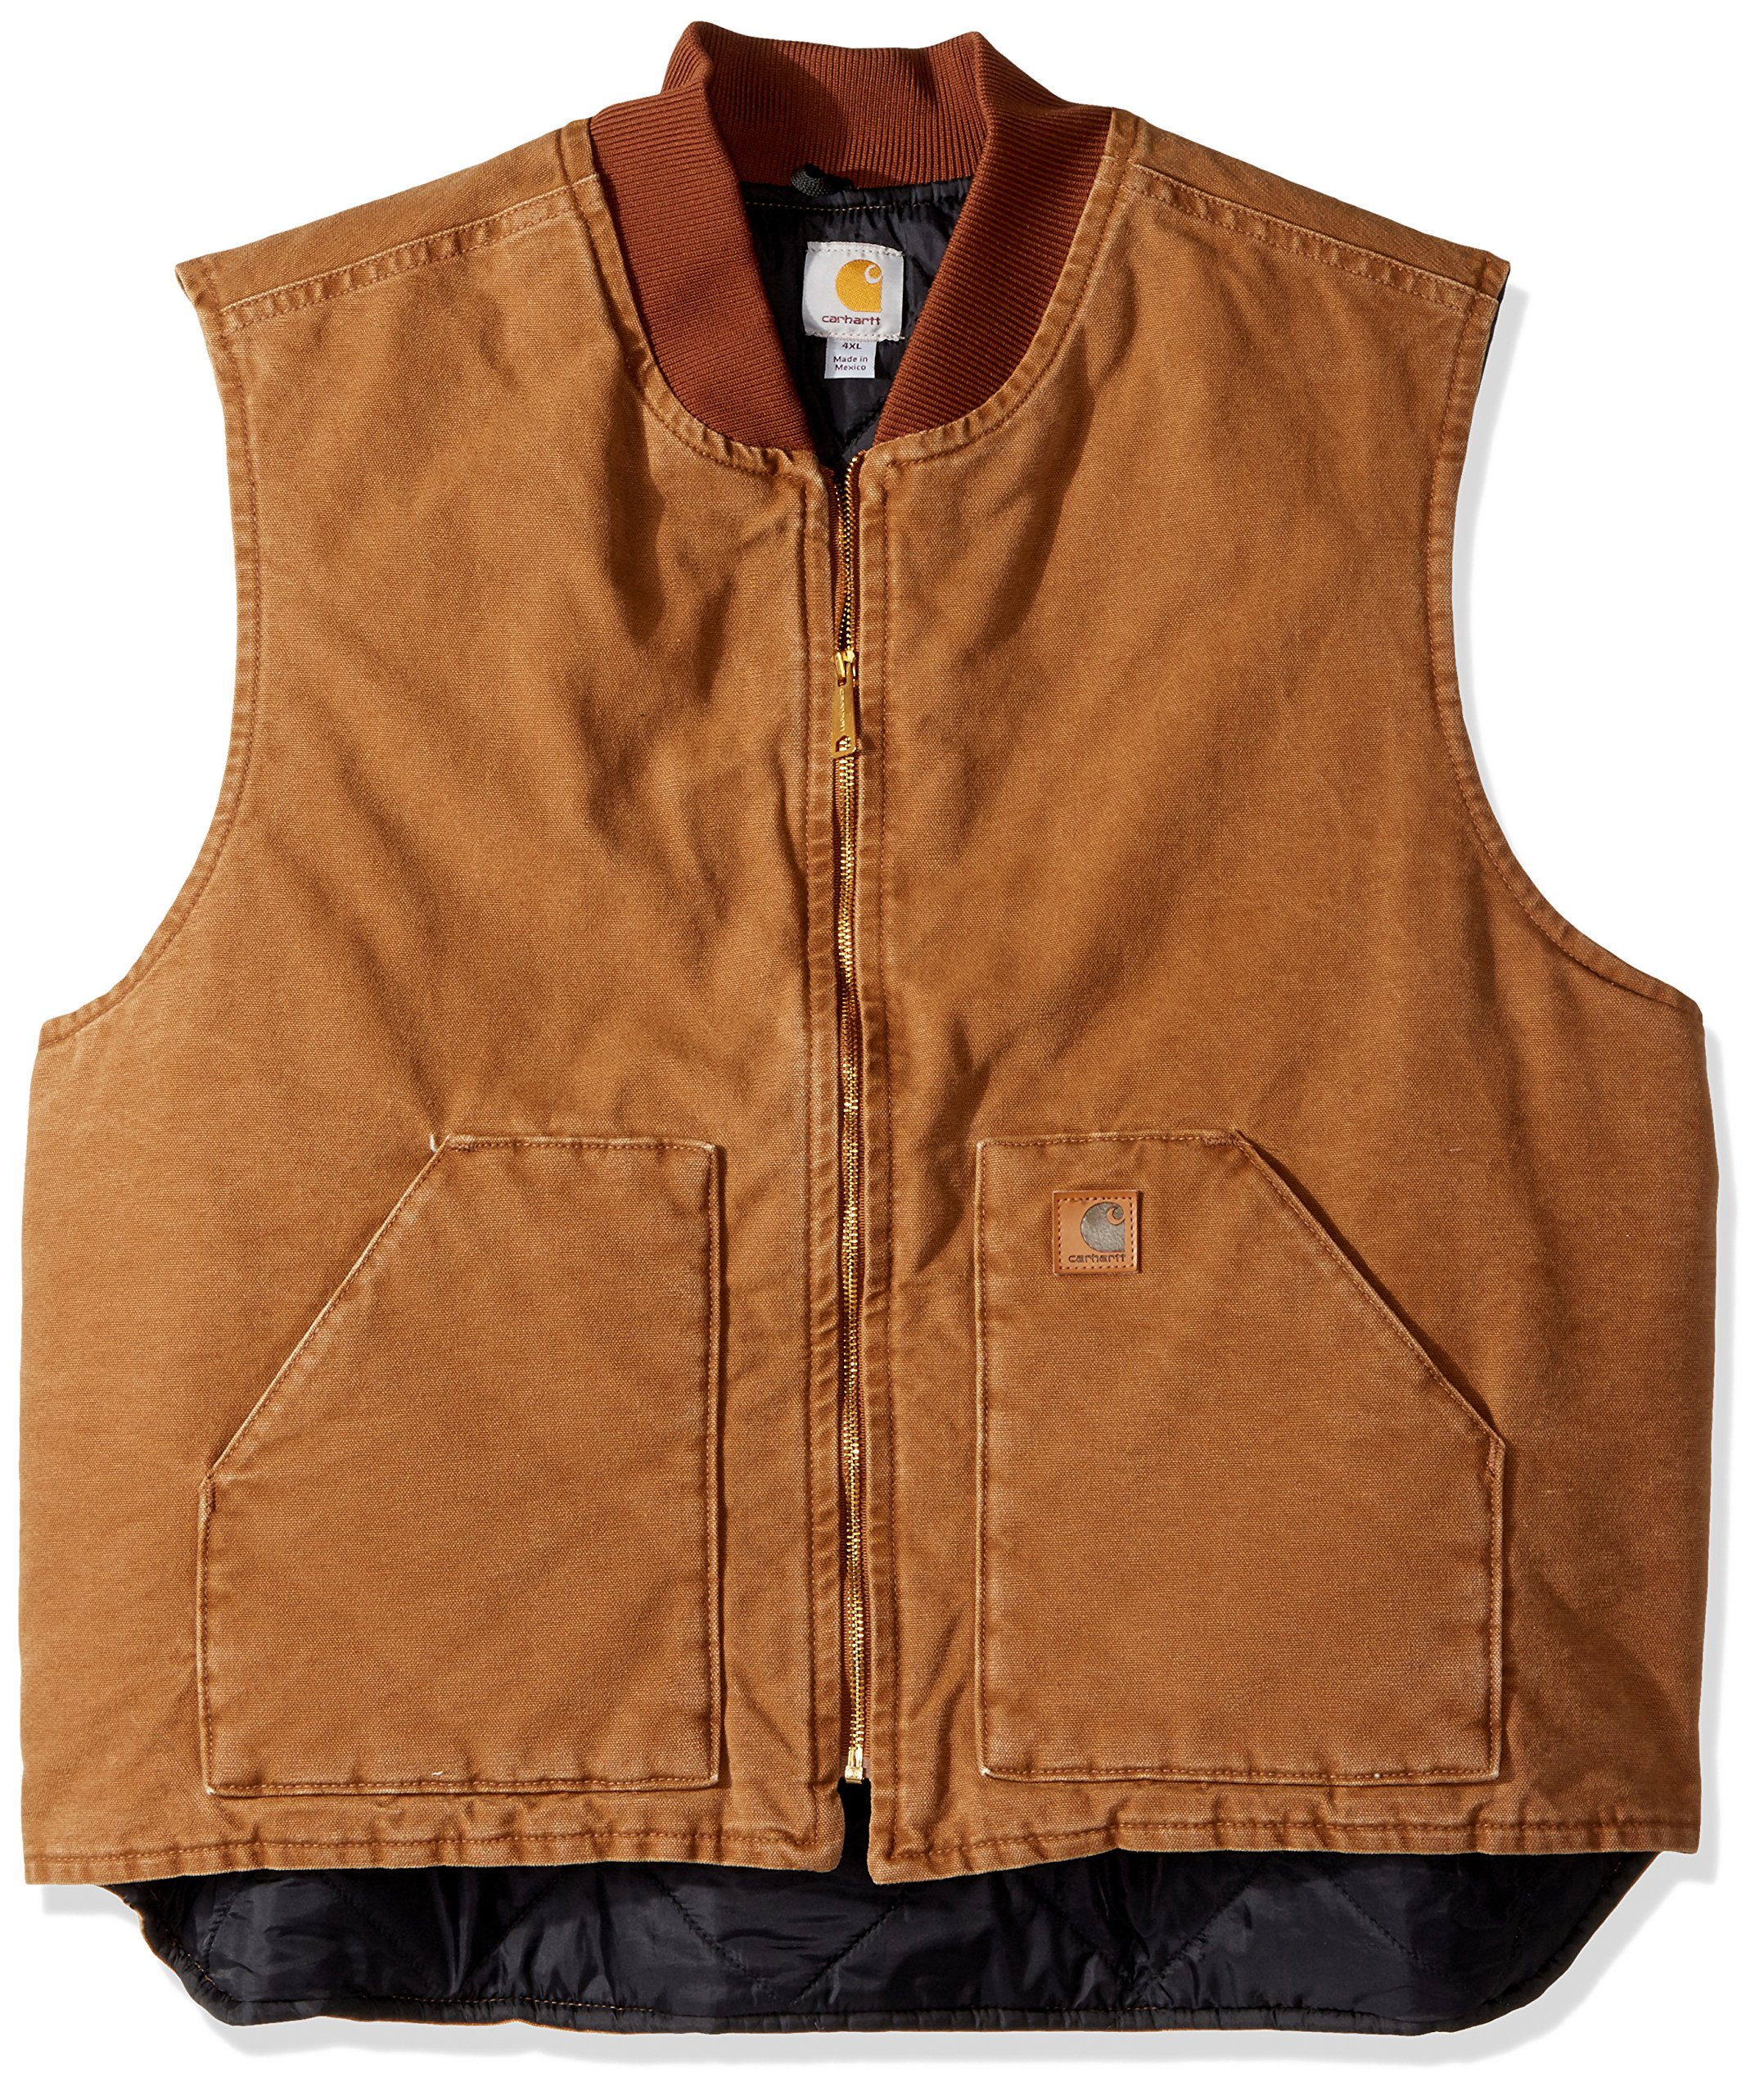 Carhartt Men's Big & Tall Sandstone Vest Arctic Quilt Lined, Brown,XX-Large Tall